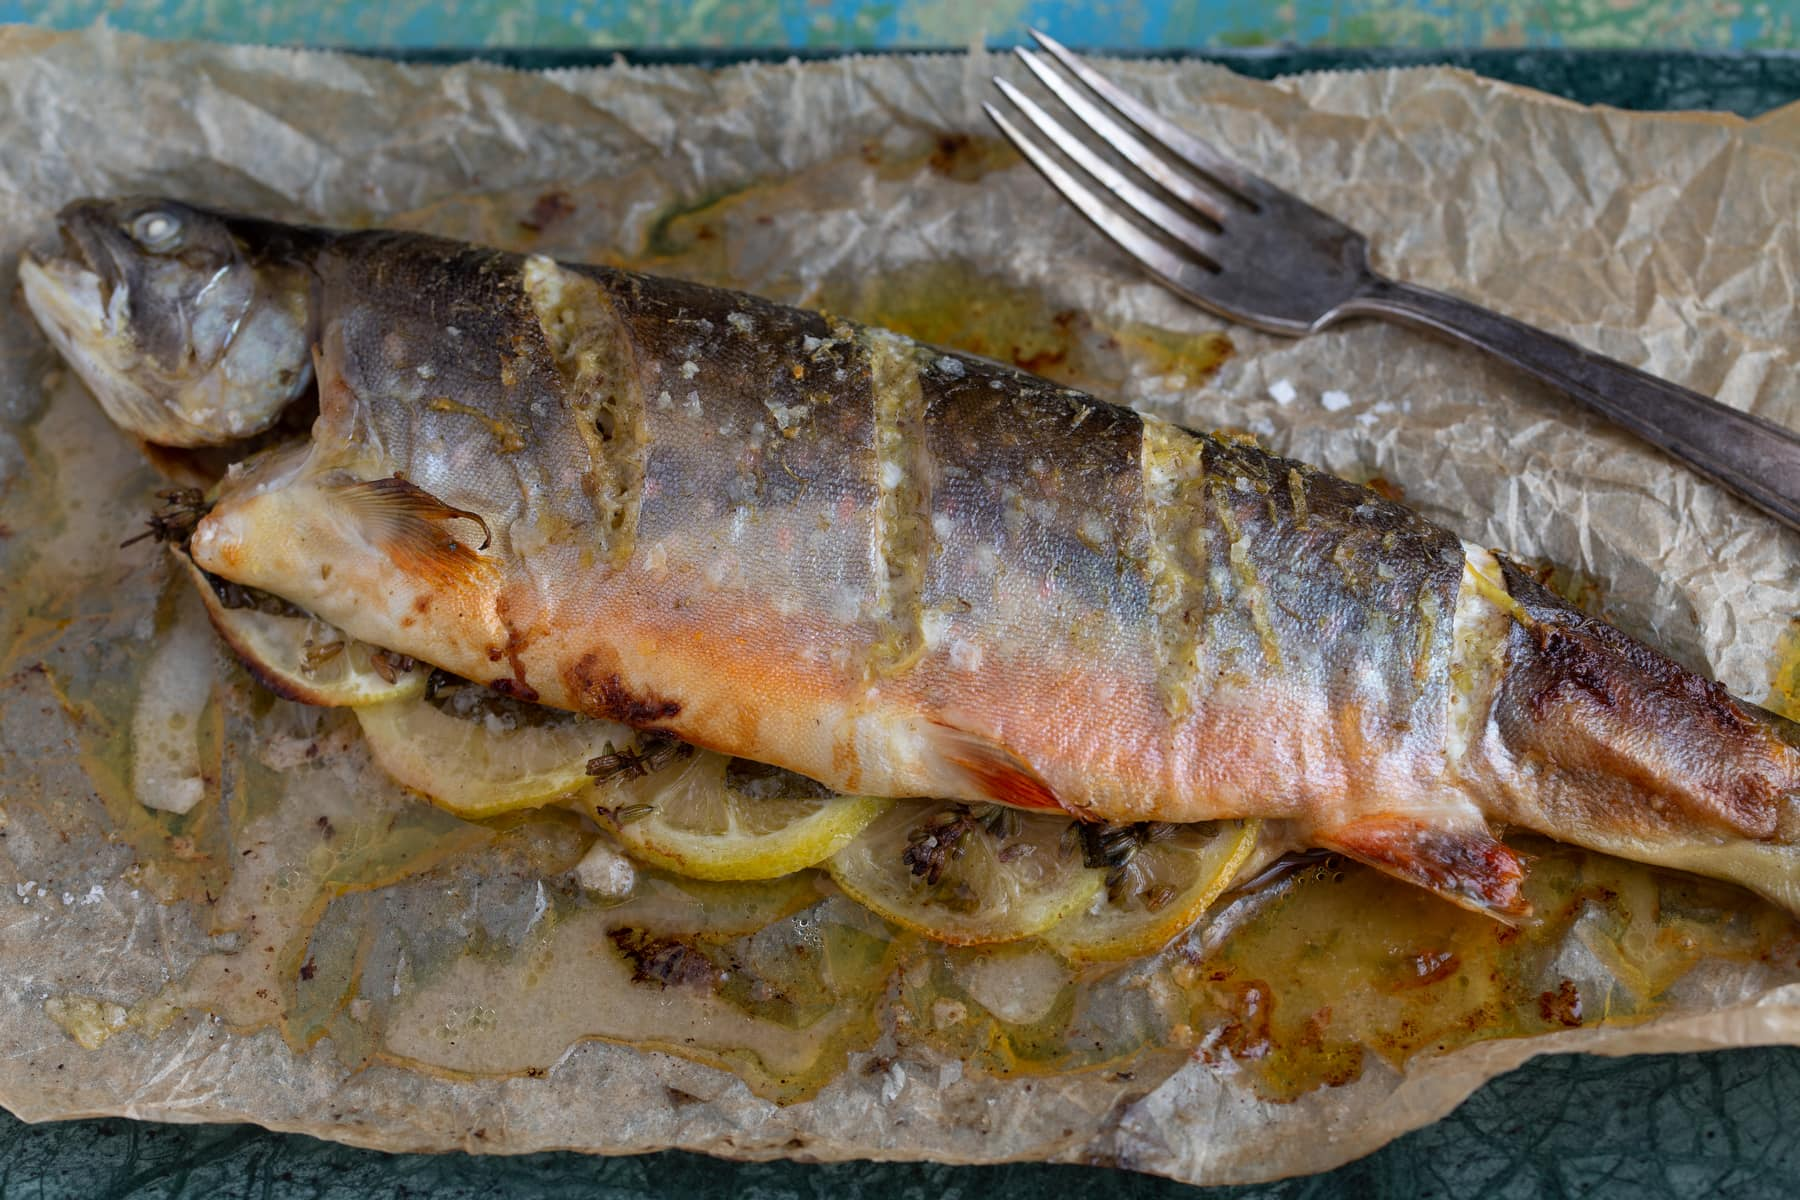 Baked rainbow trout with lemon lavender butter.